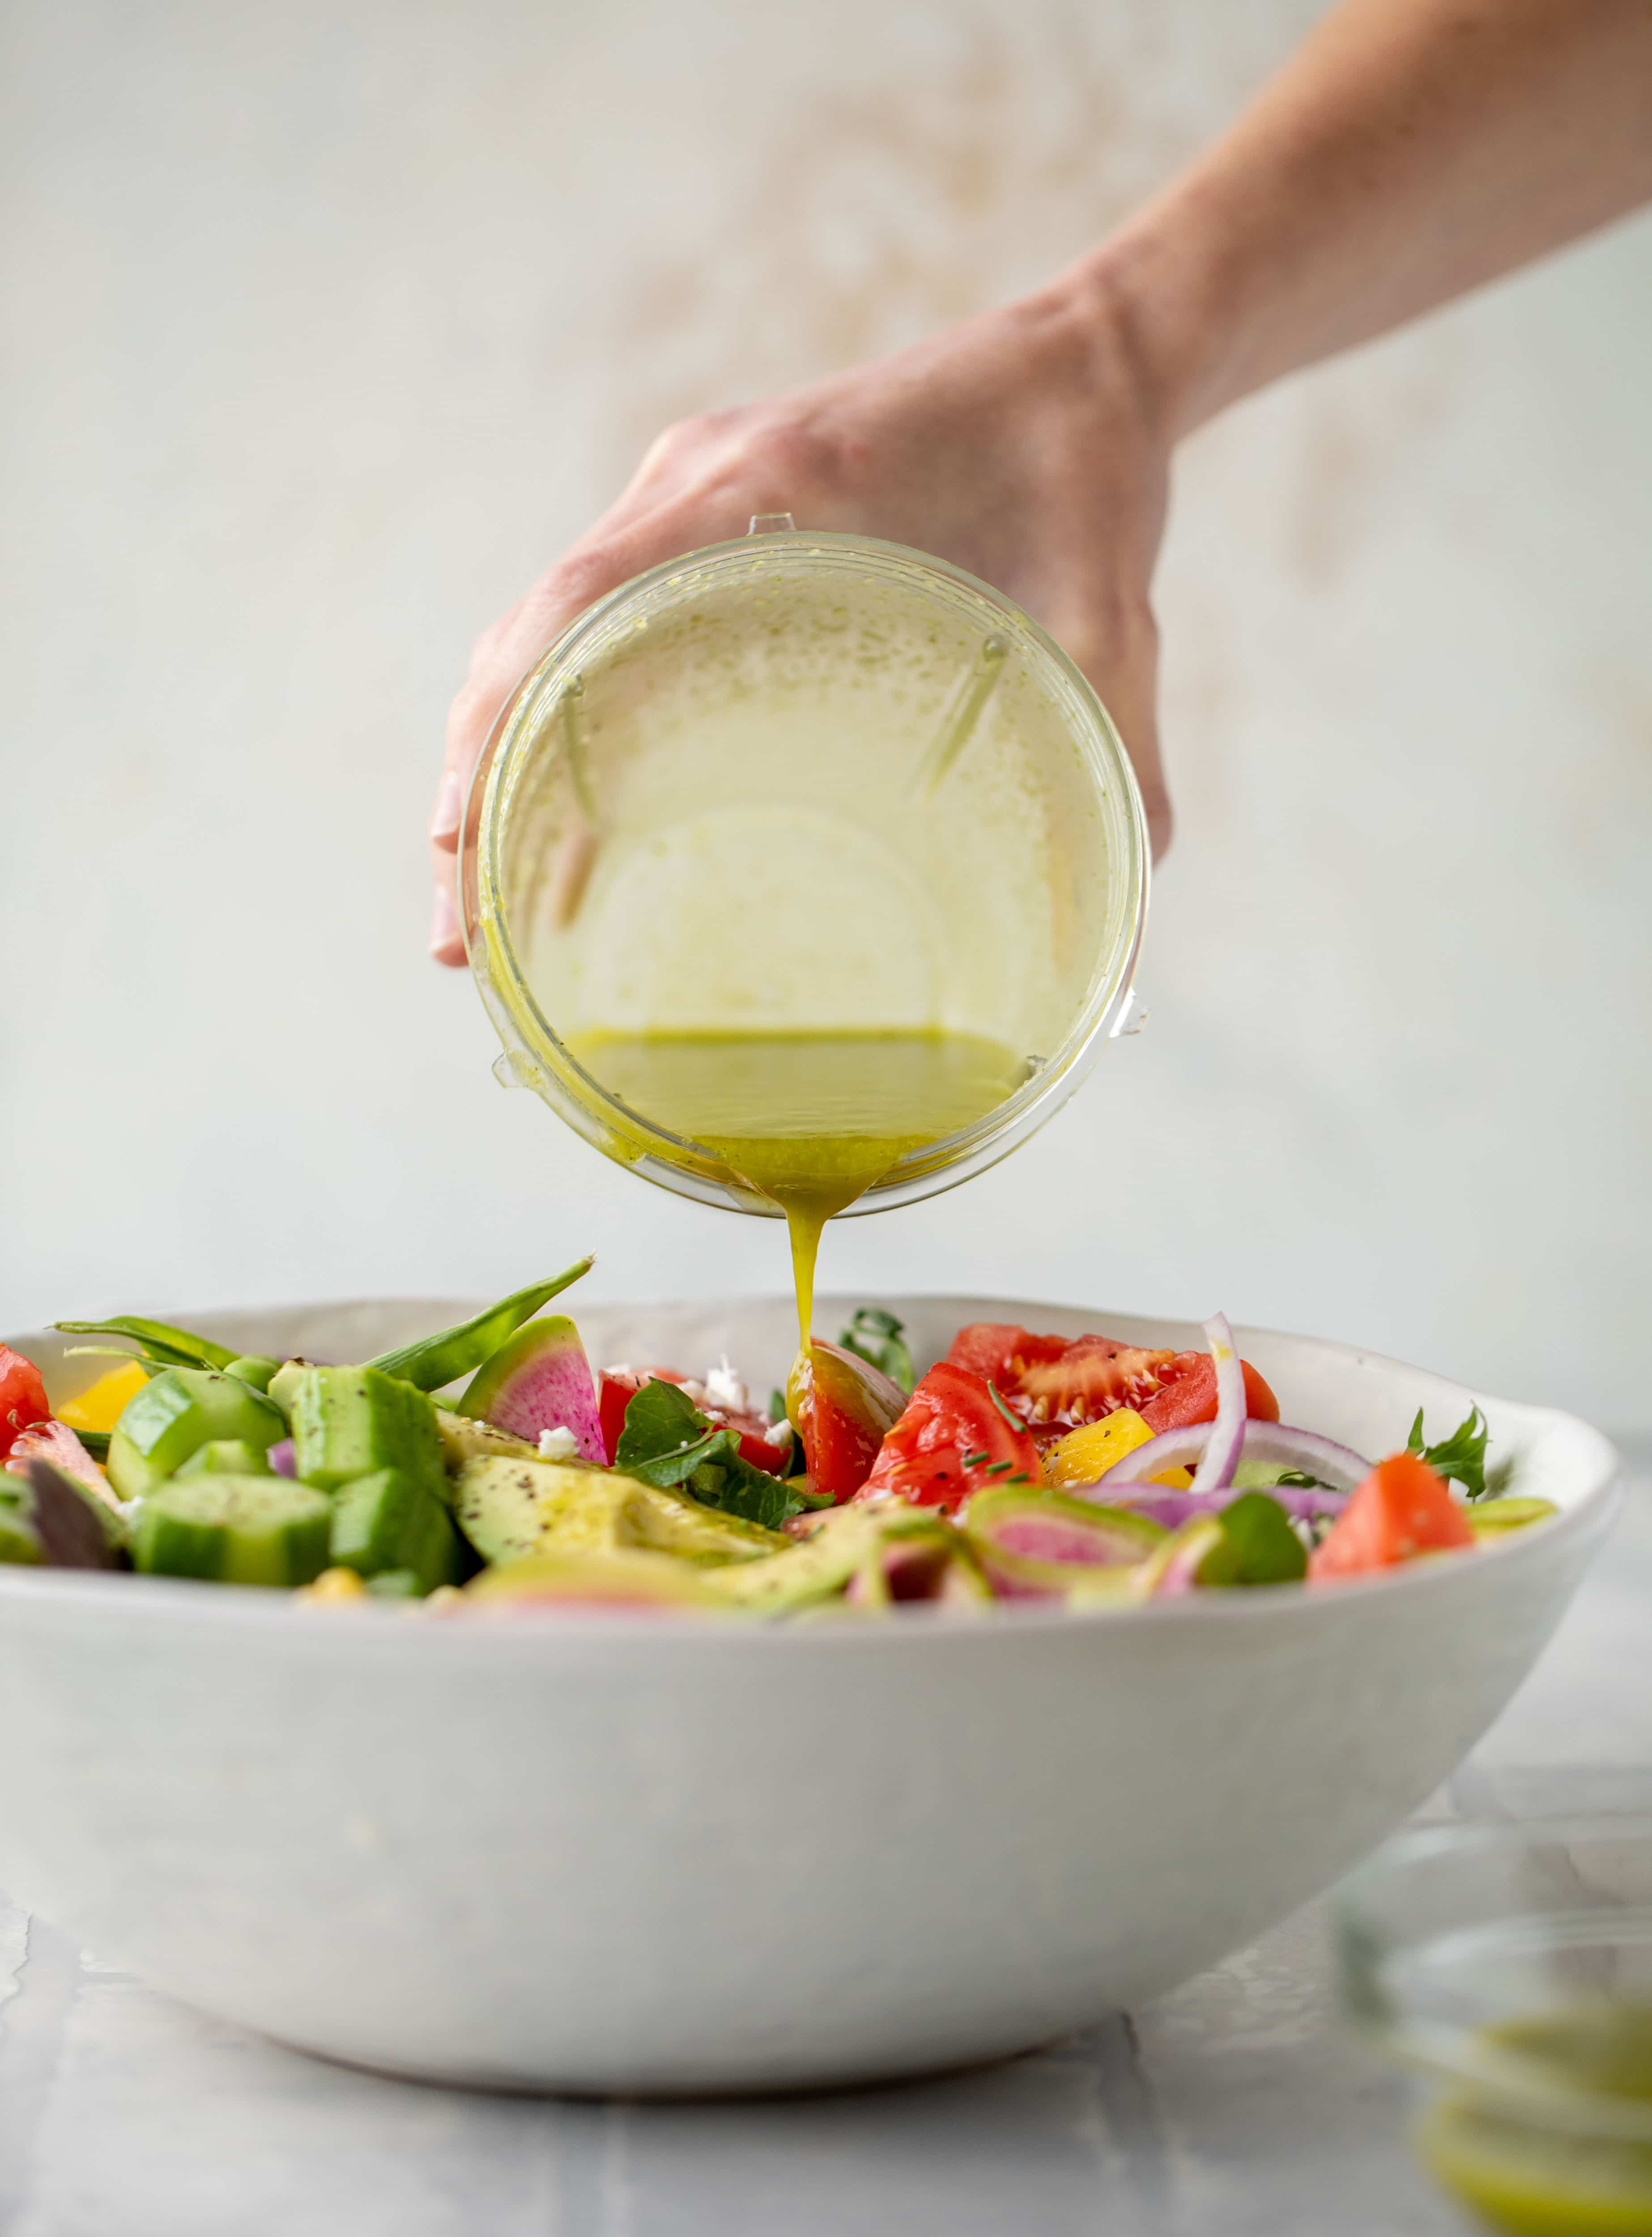 pouring vinaigrette on salad